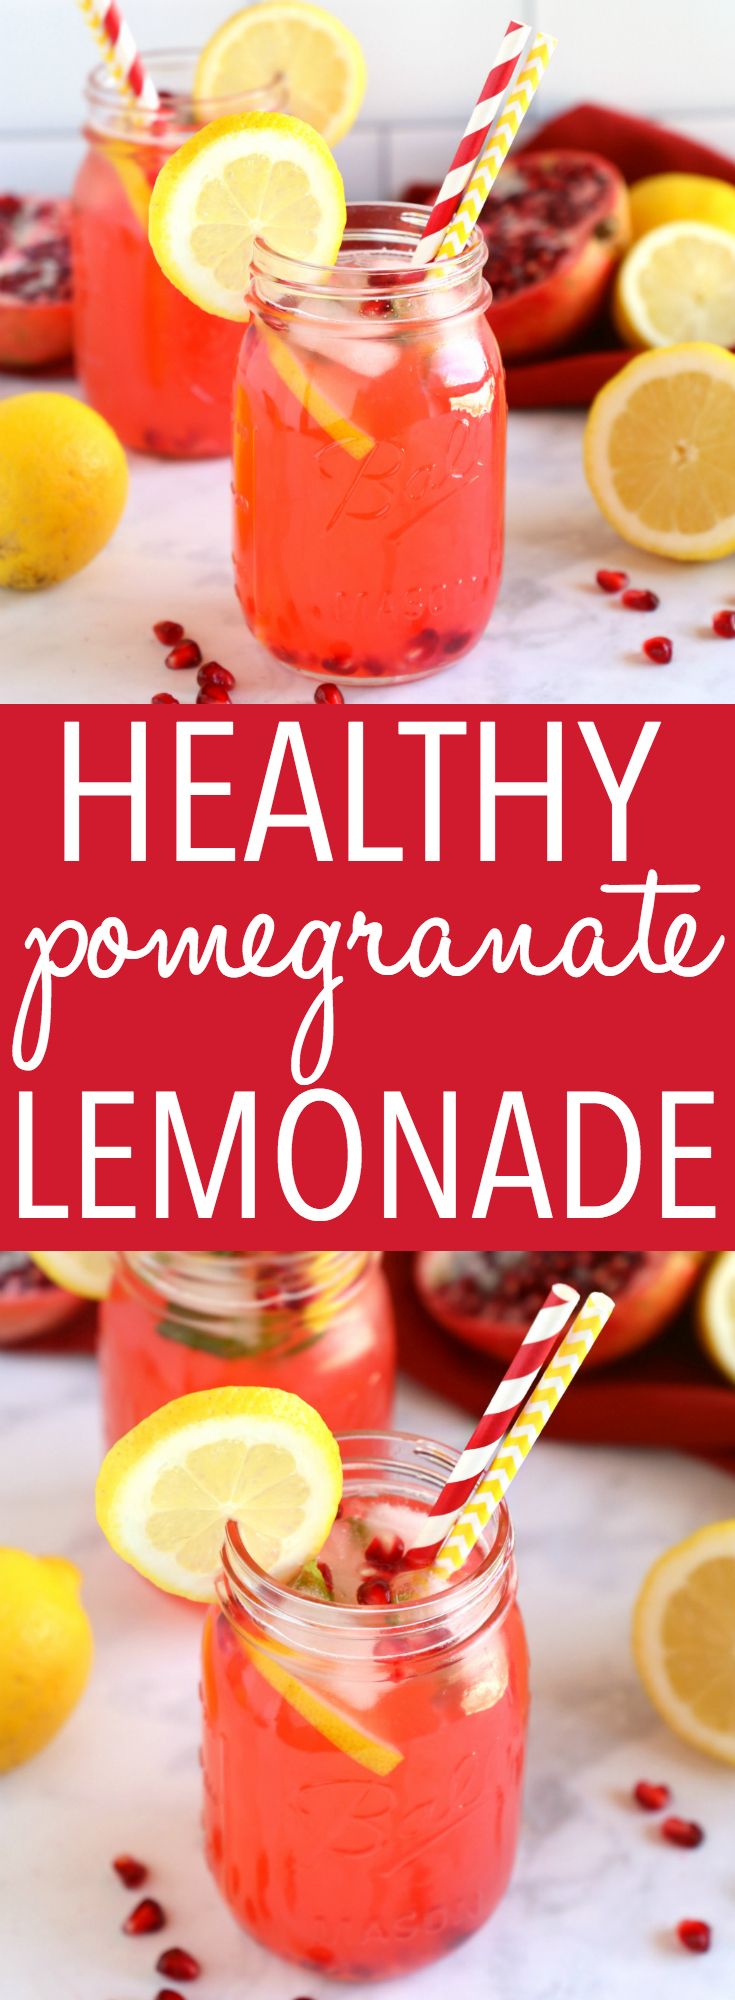 This Healthy Pomegranate Lemonade is the perfect summer drink made with fresh pomegranates, lemons, and sweetened naturally with no refined sugar! It's easy to make and so refreshing! Recipe from thebusybaker.ca! #healthy #lemonade #pomegranate #summer #drink #refreshing #easy #recipe #honey #refinedsugarfree #lowcalorie via @busybakerblog